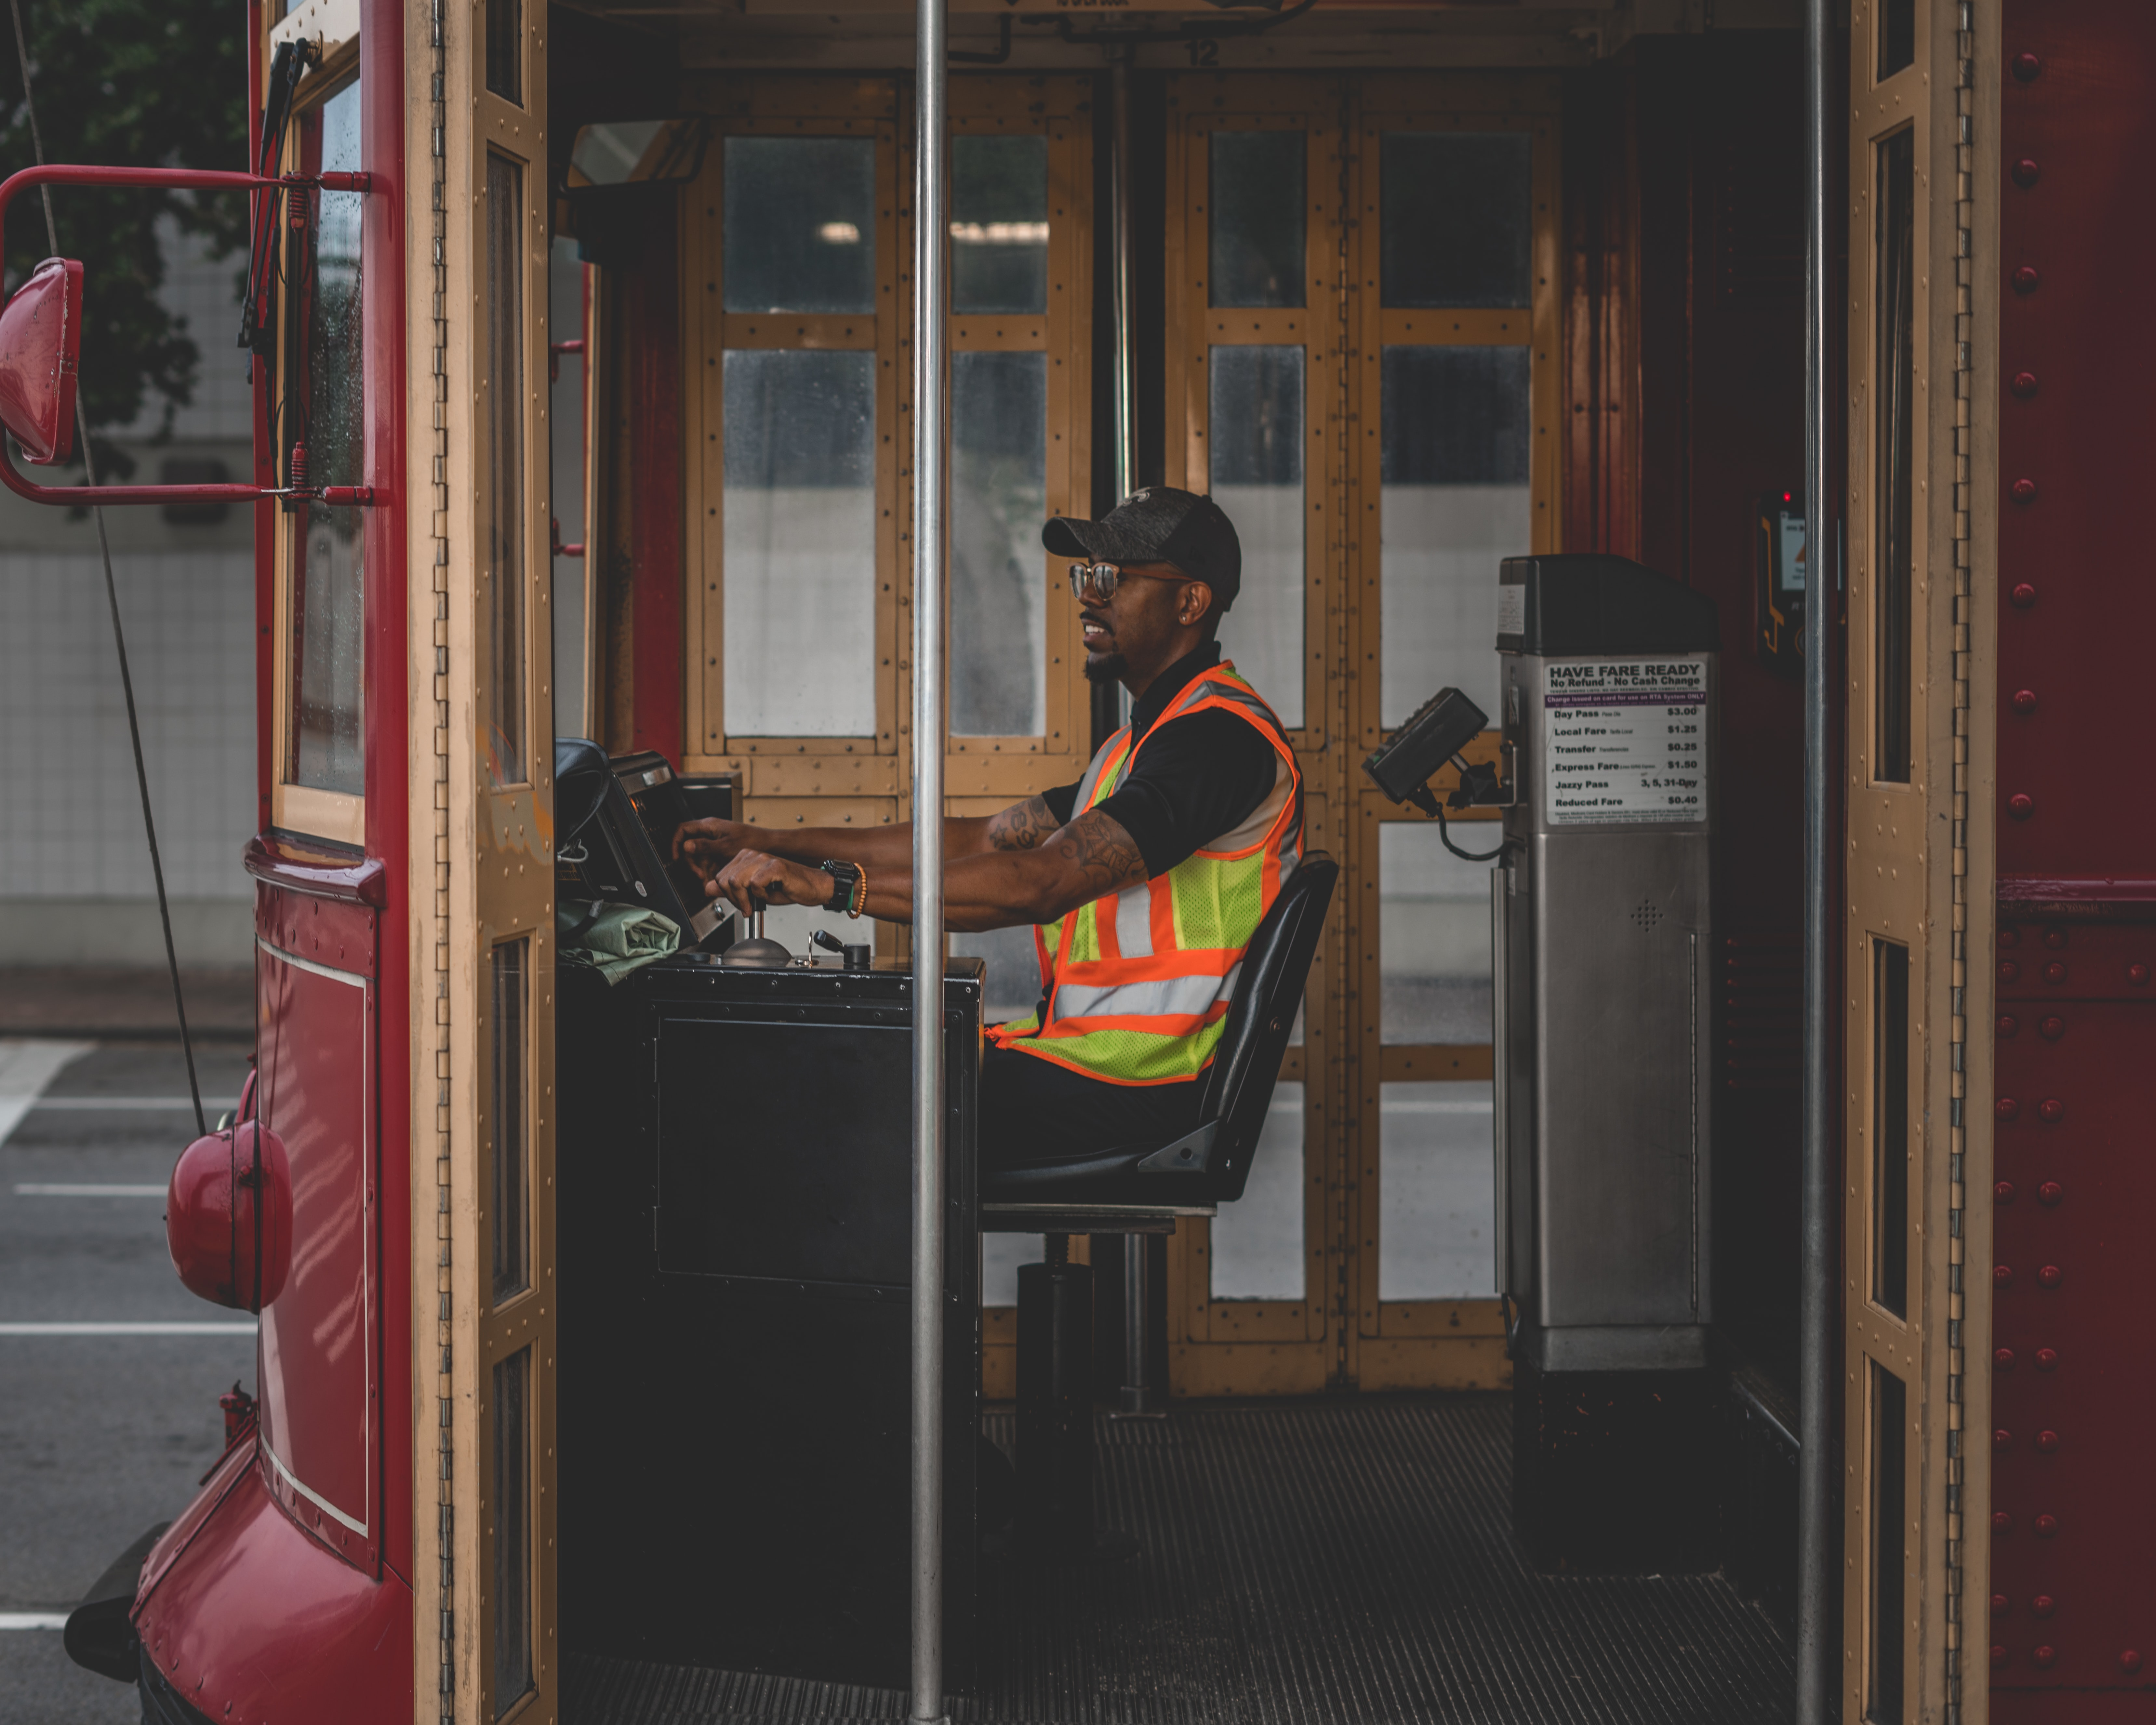 man sitting on chair controlling bus